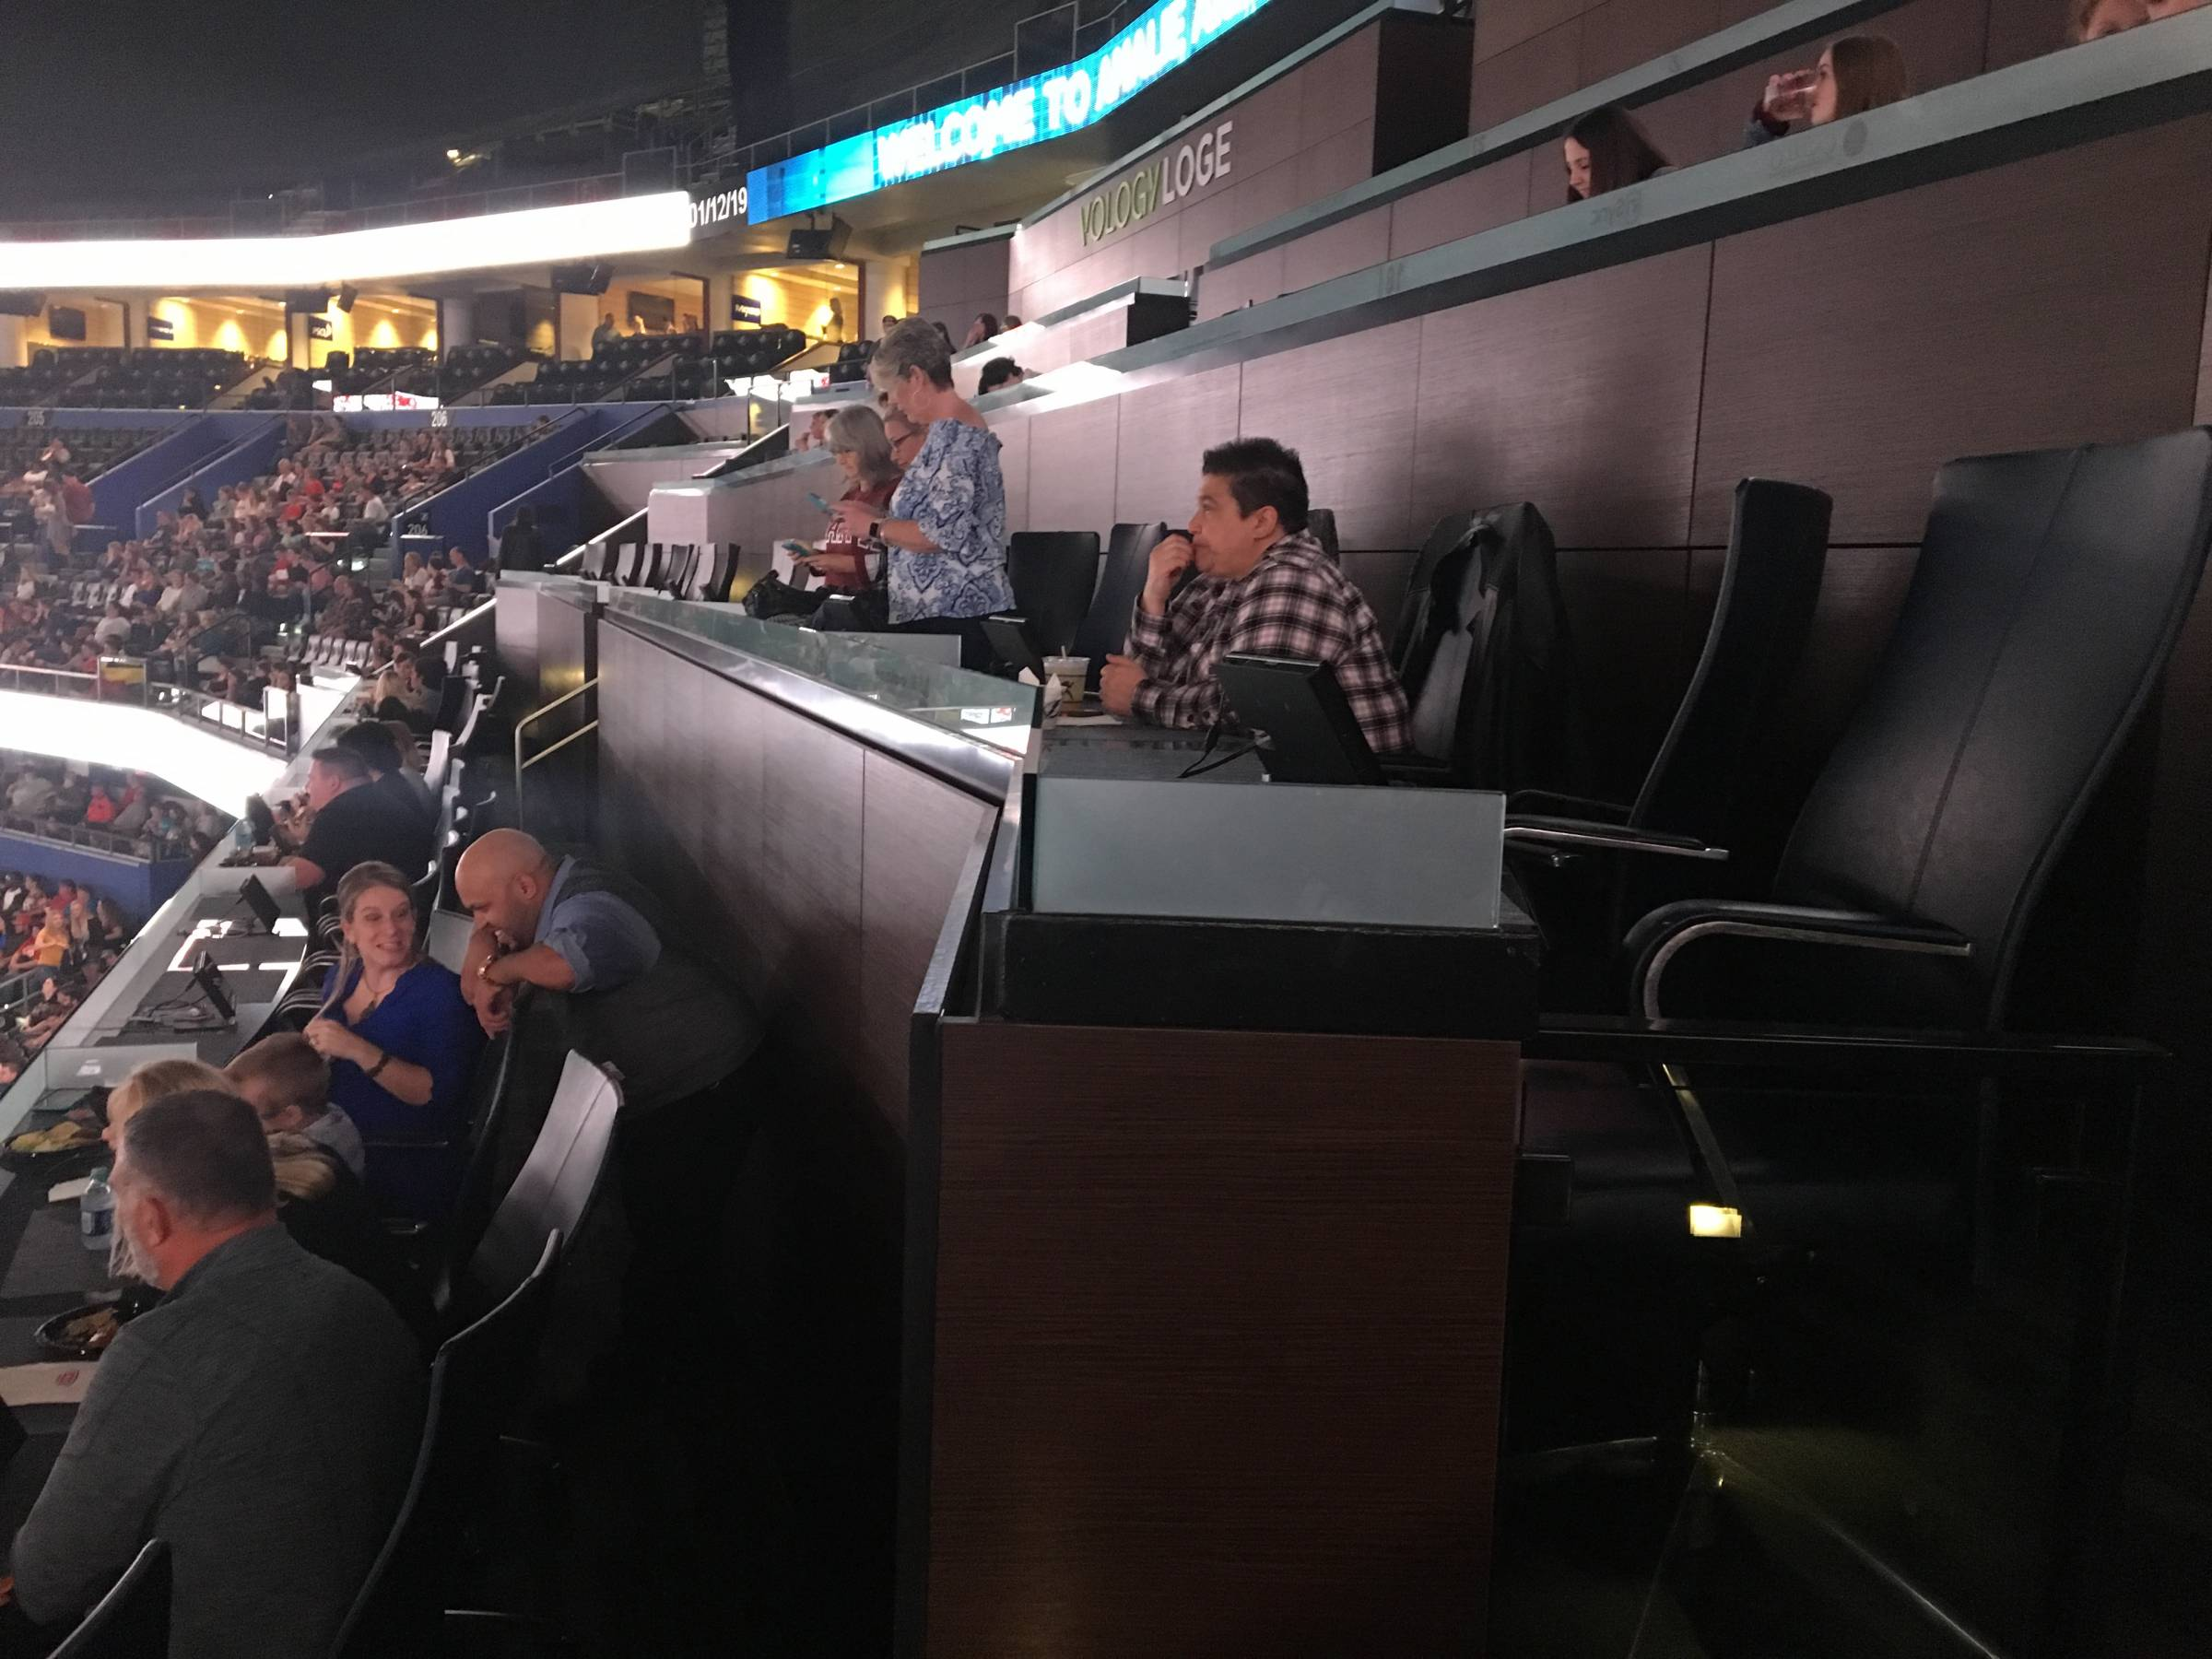 Vology Loge at Amalie Arena